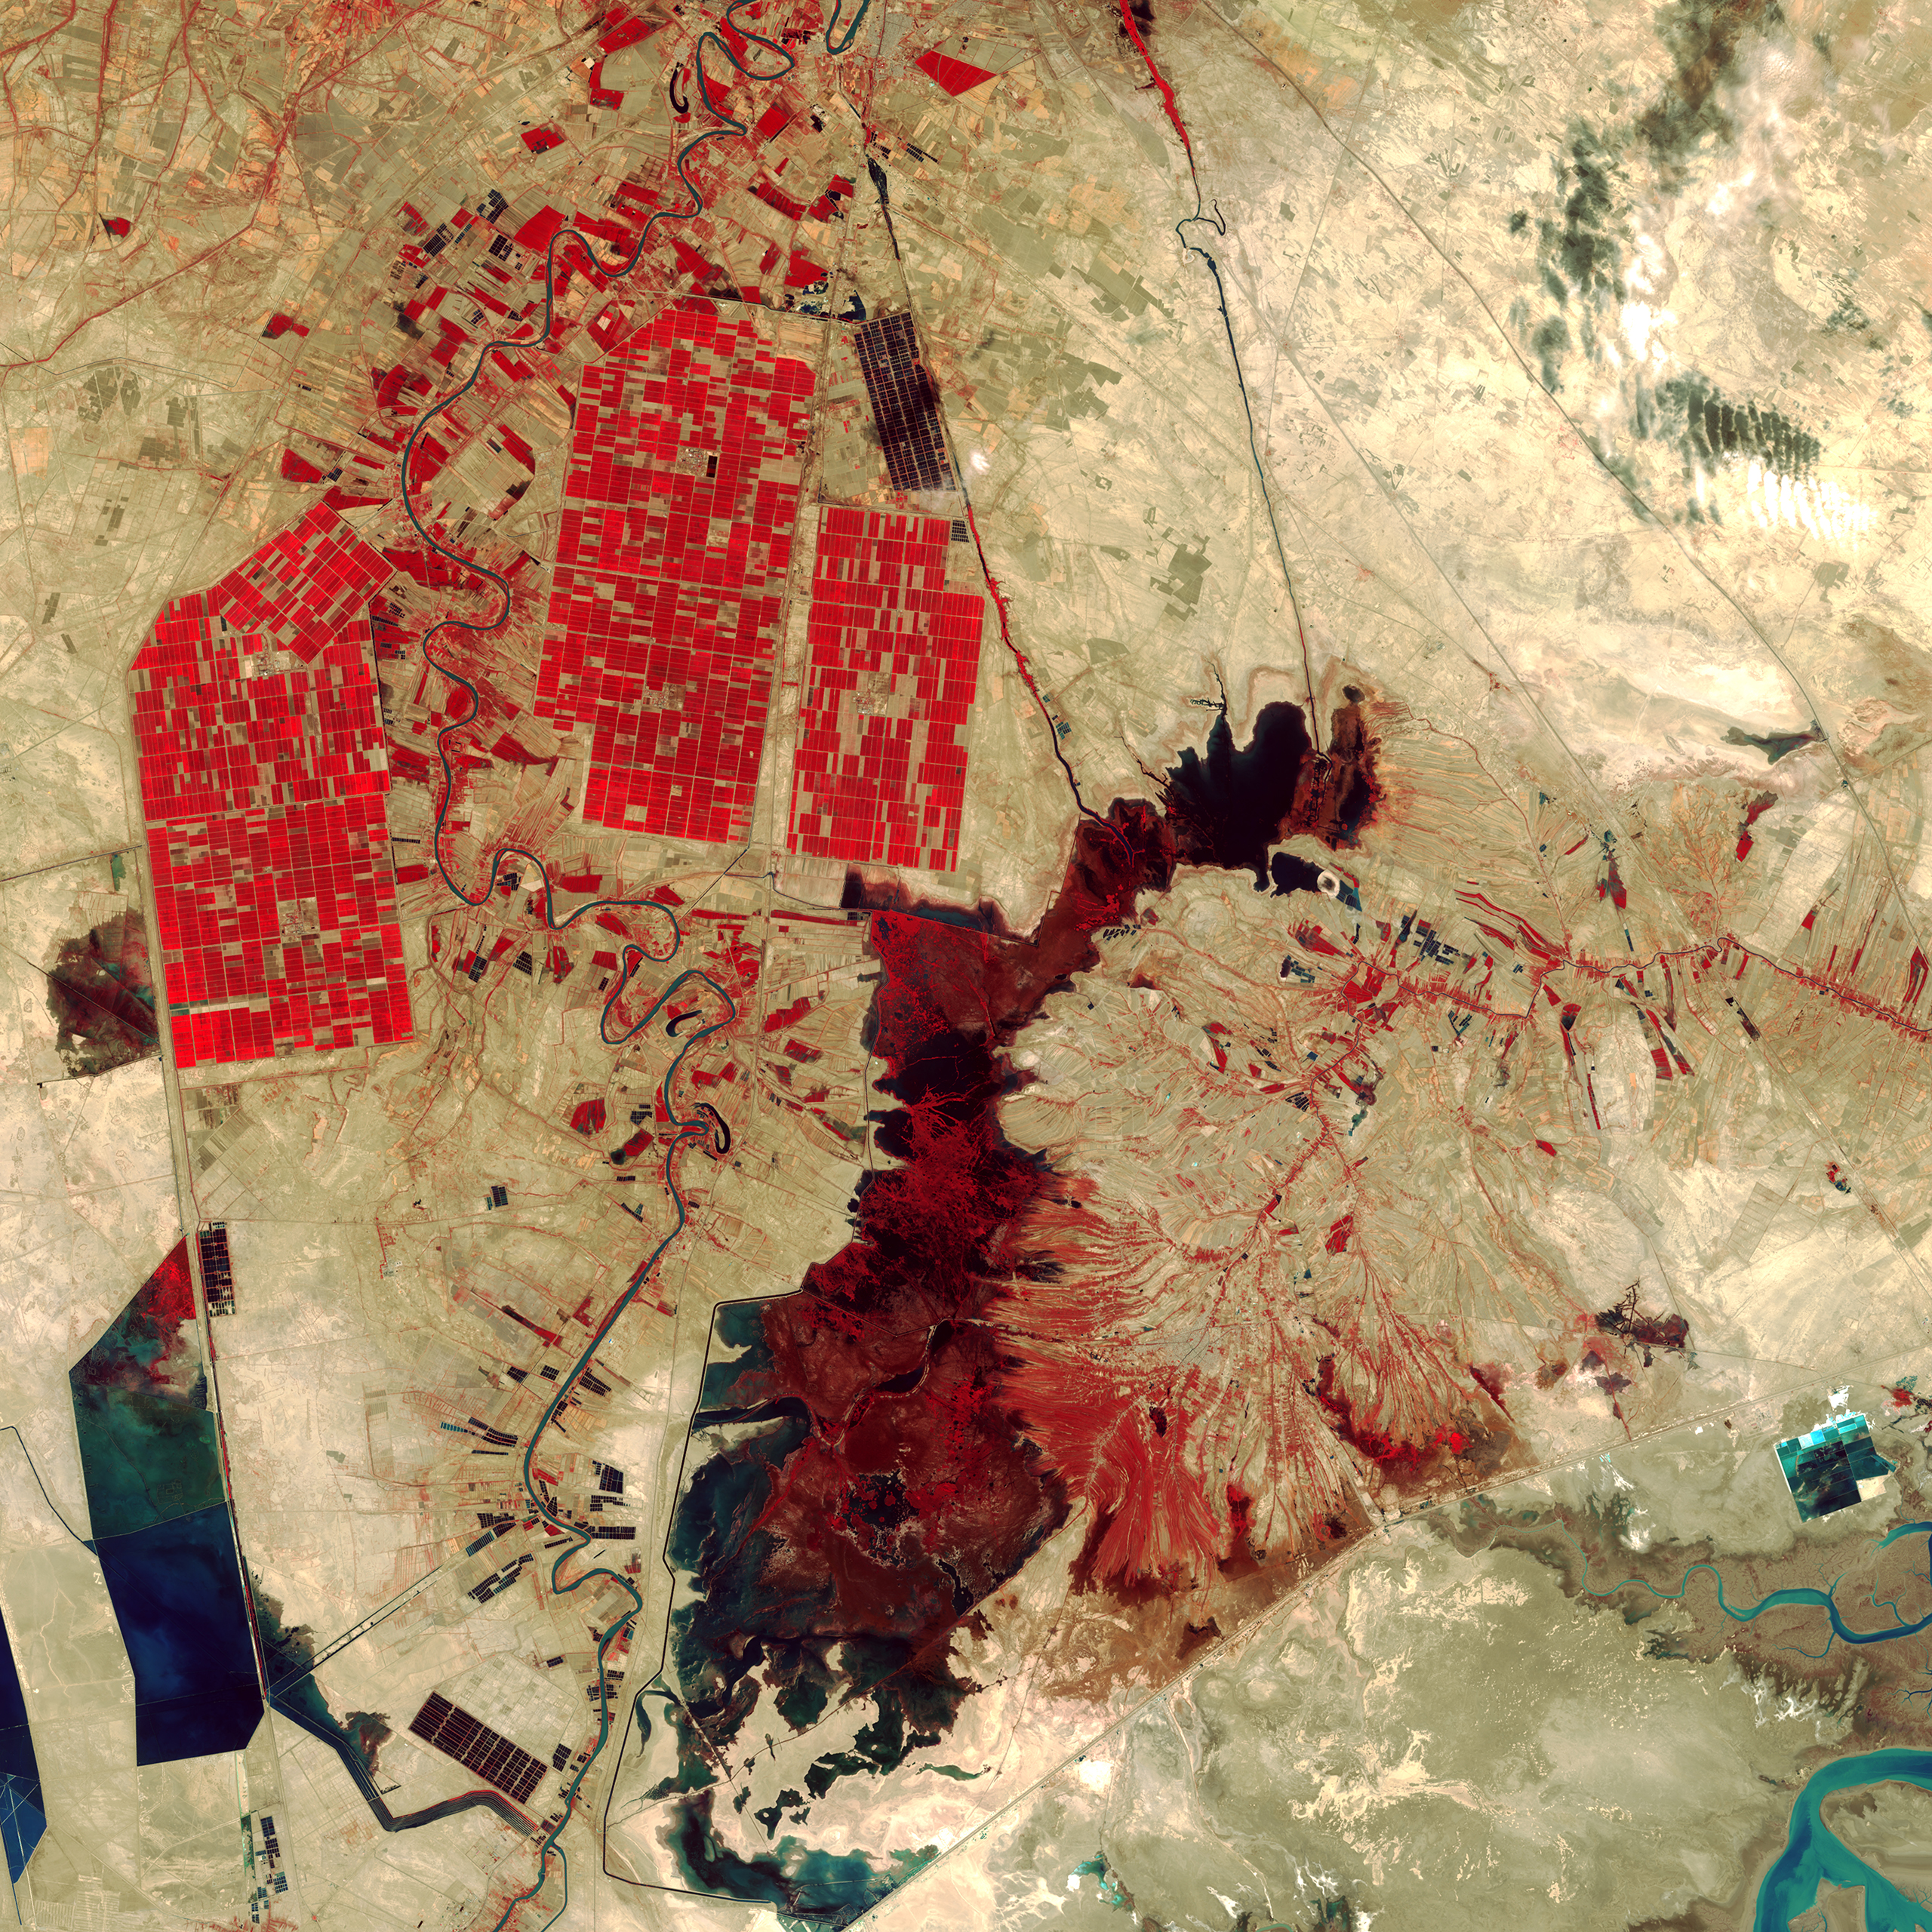 Shadegan Wetlands, IranRed areas in this Landsat 8 image depict actively growing vegetation. The rectangular shapes in the upper left reveal irrigated farmland while the dark red shape in the center of the image is Shadegan Pond. Oct. 12, 2014.